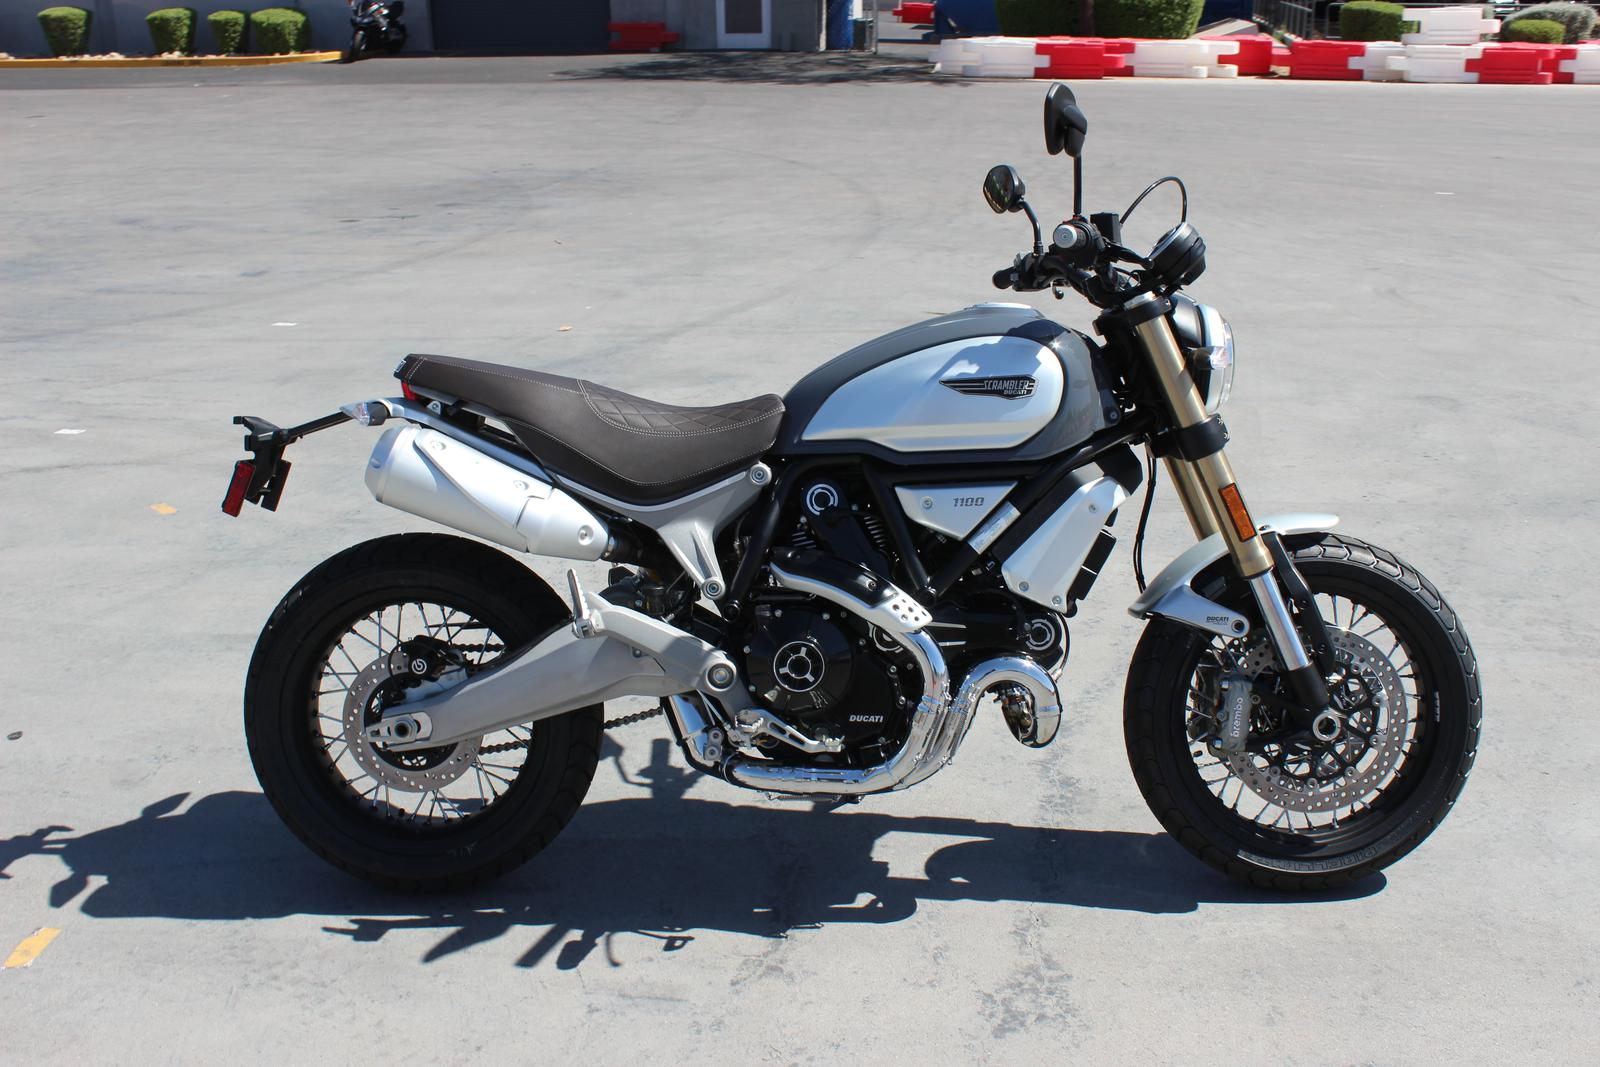 2018 Ducati Scrambler 1100 Special / UP TO $1000 IN FREE ACCESSORIES. for  sale in Scottsdale, AZ | GO AZ Motorcycles in Scottsdale (480) 609-1800